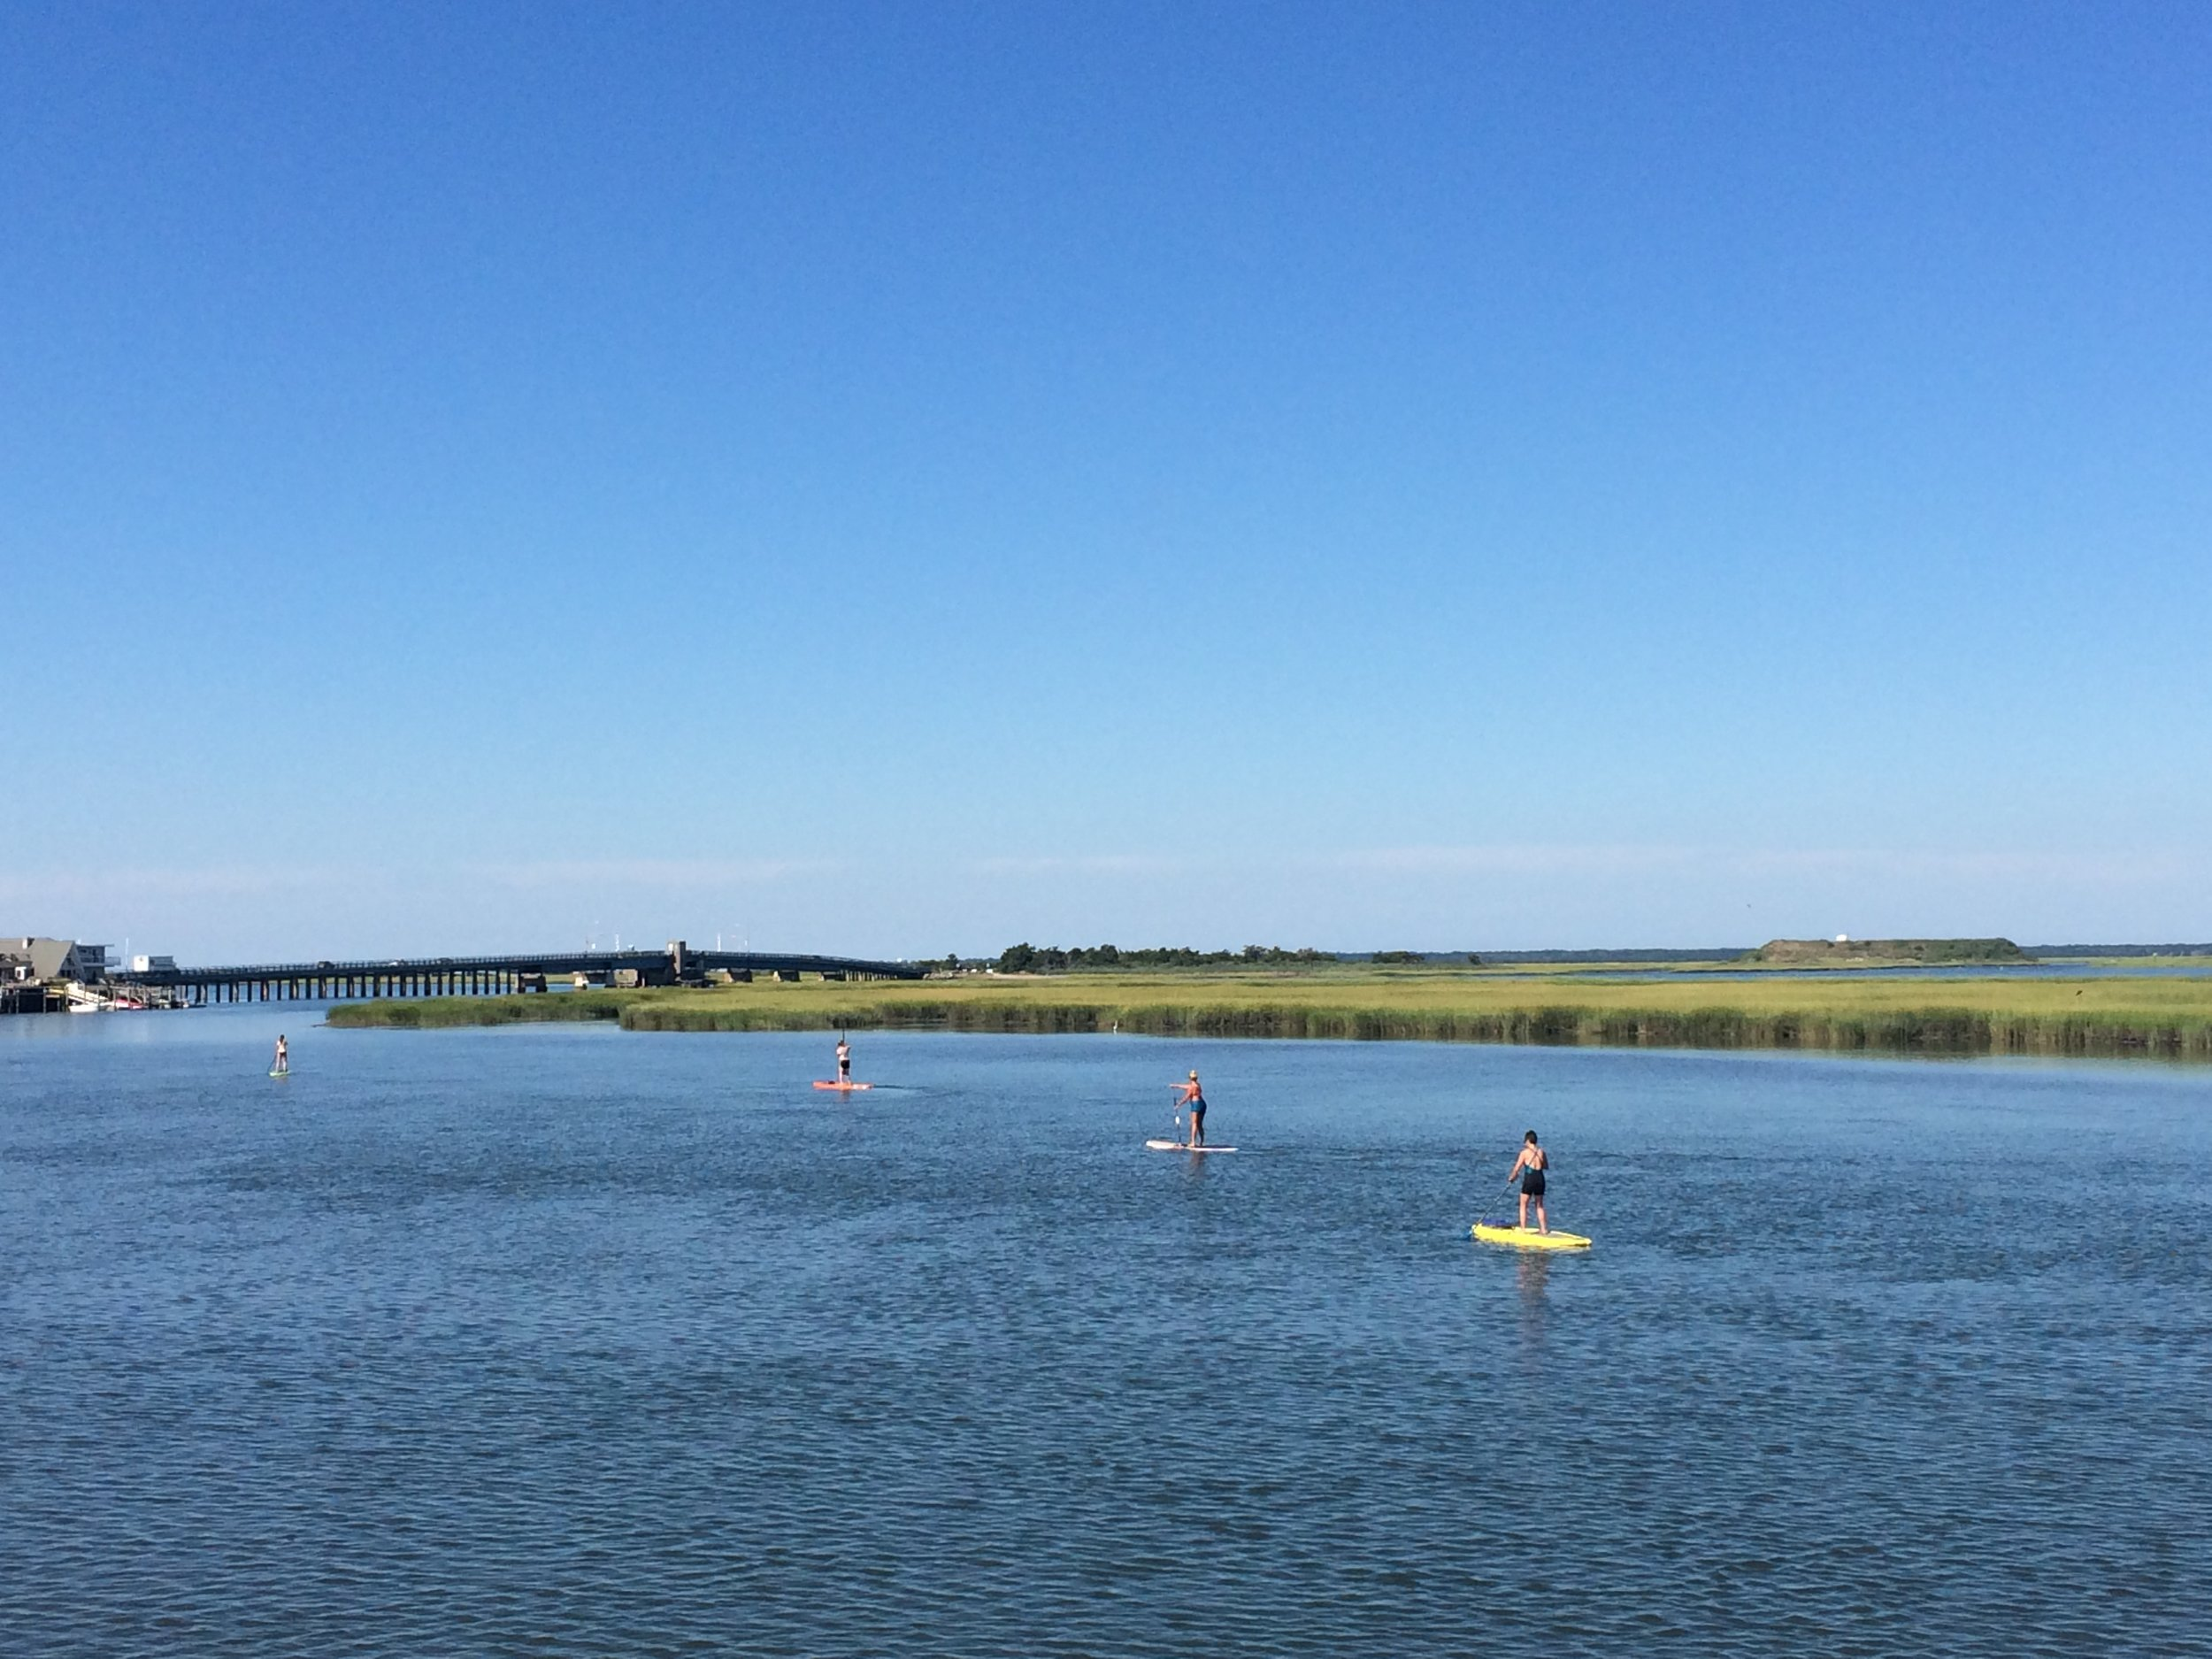 Paddling around Sedge Island at 114th Street and the bay in Stone Harbor, New Jersey. Part of our 1.5 to 2 mile long back bay eco tour.